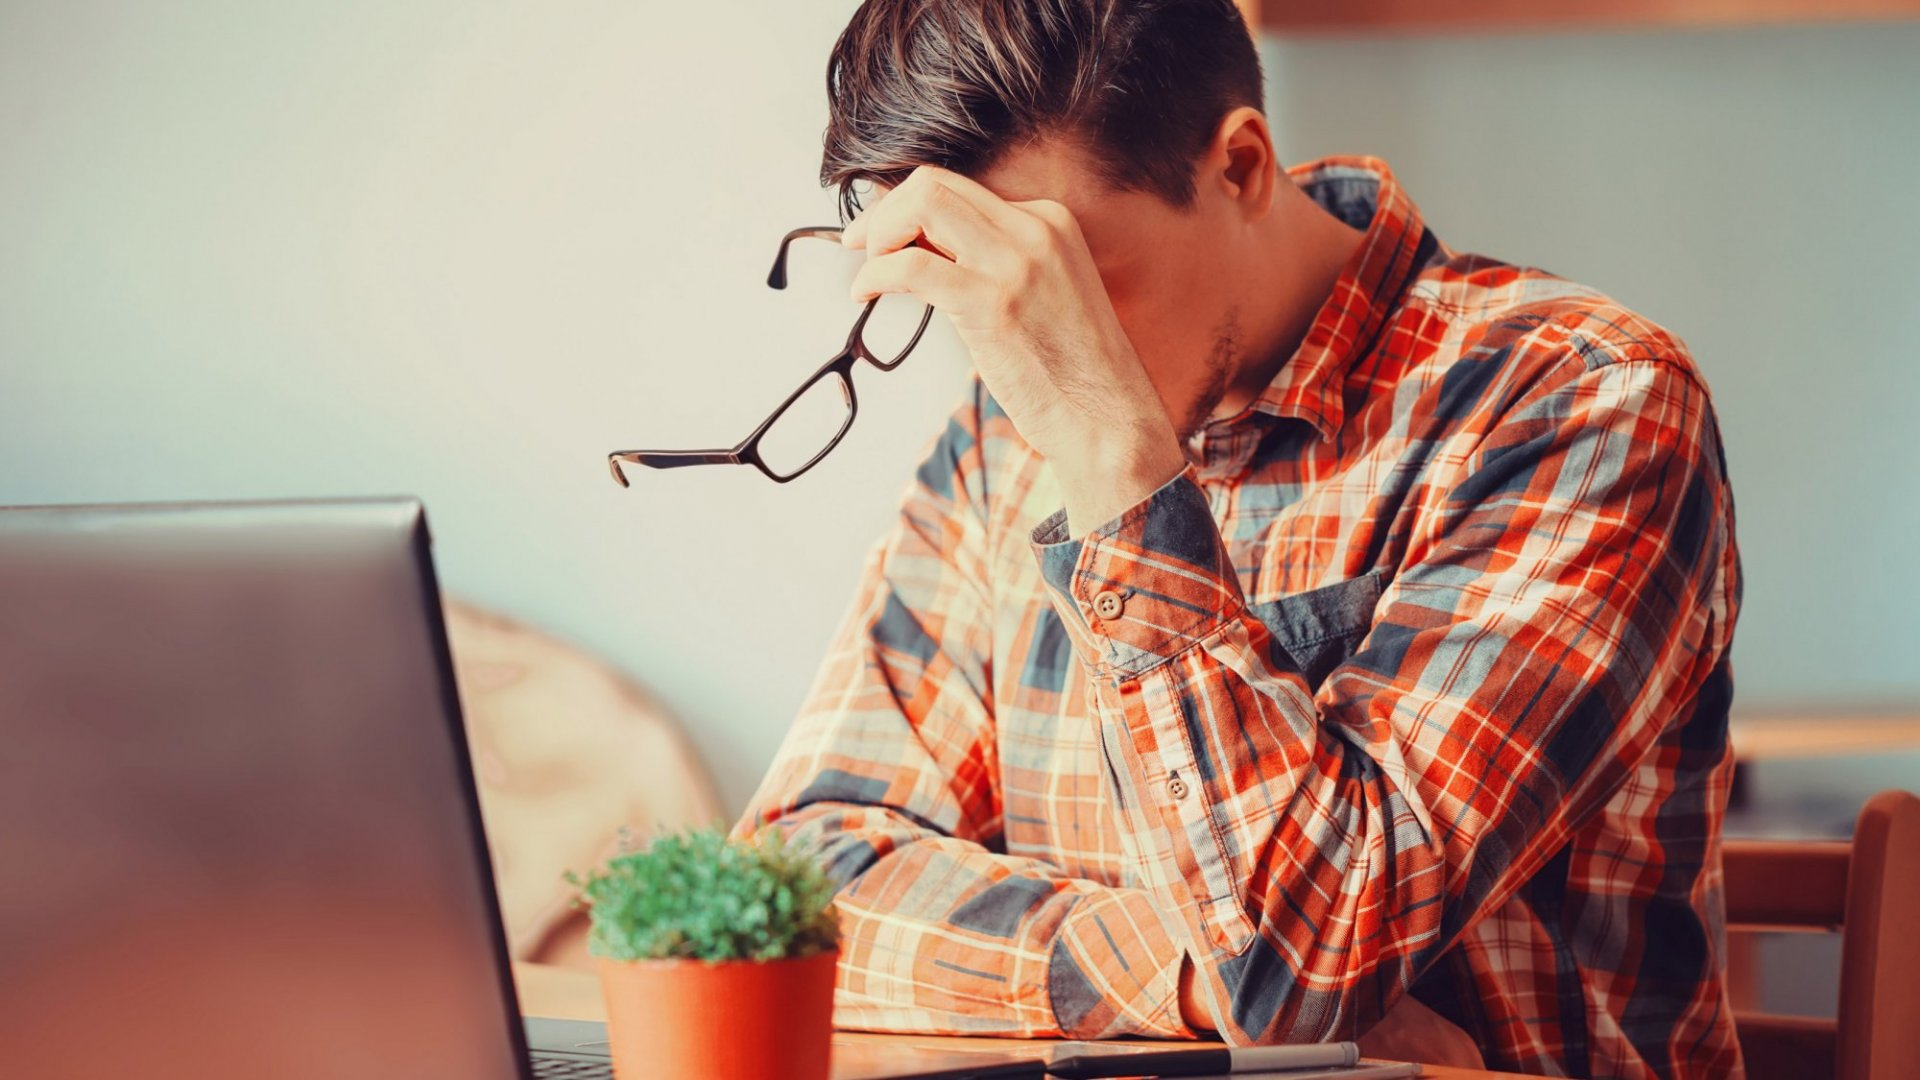 Overwhelmed and Exhausted? Executive Coaches Recommend These 5 Practices